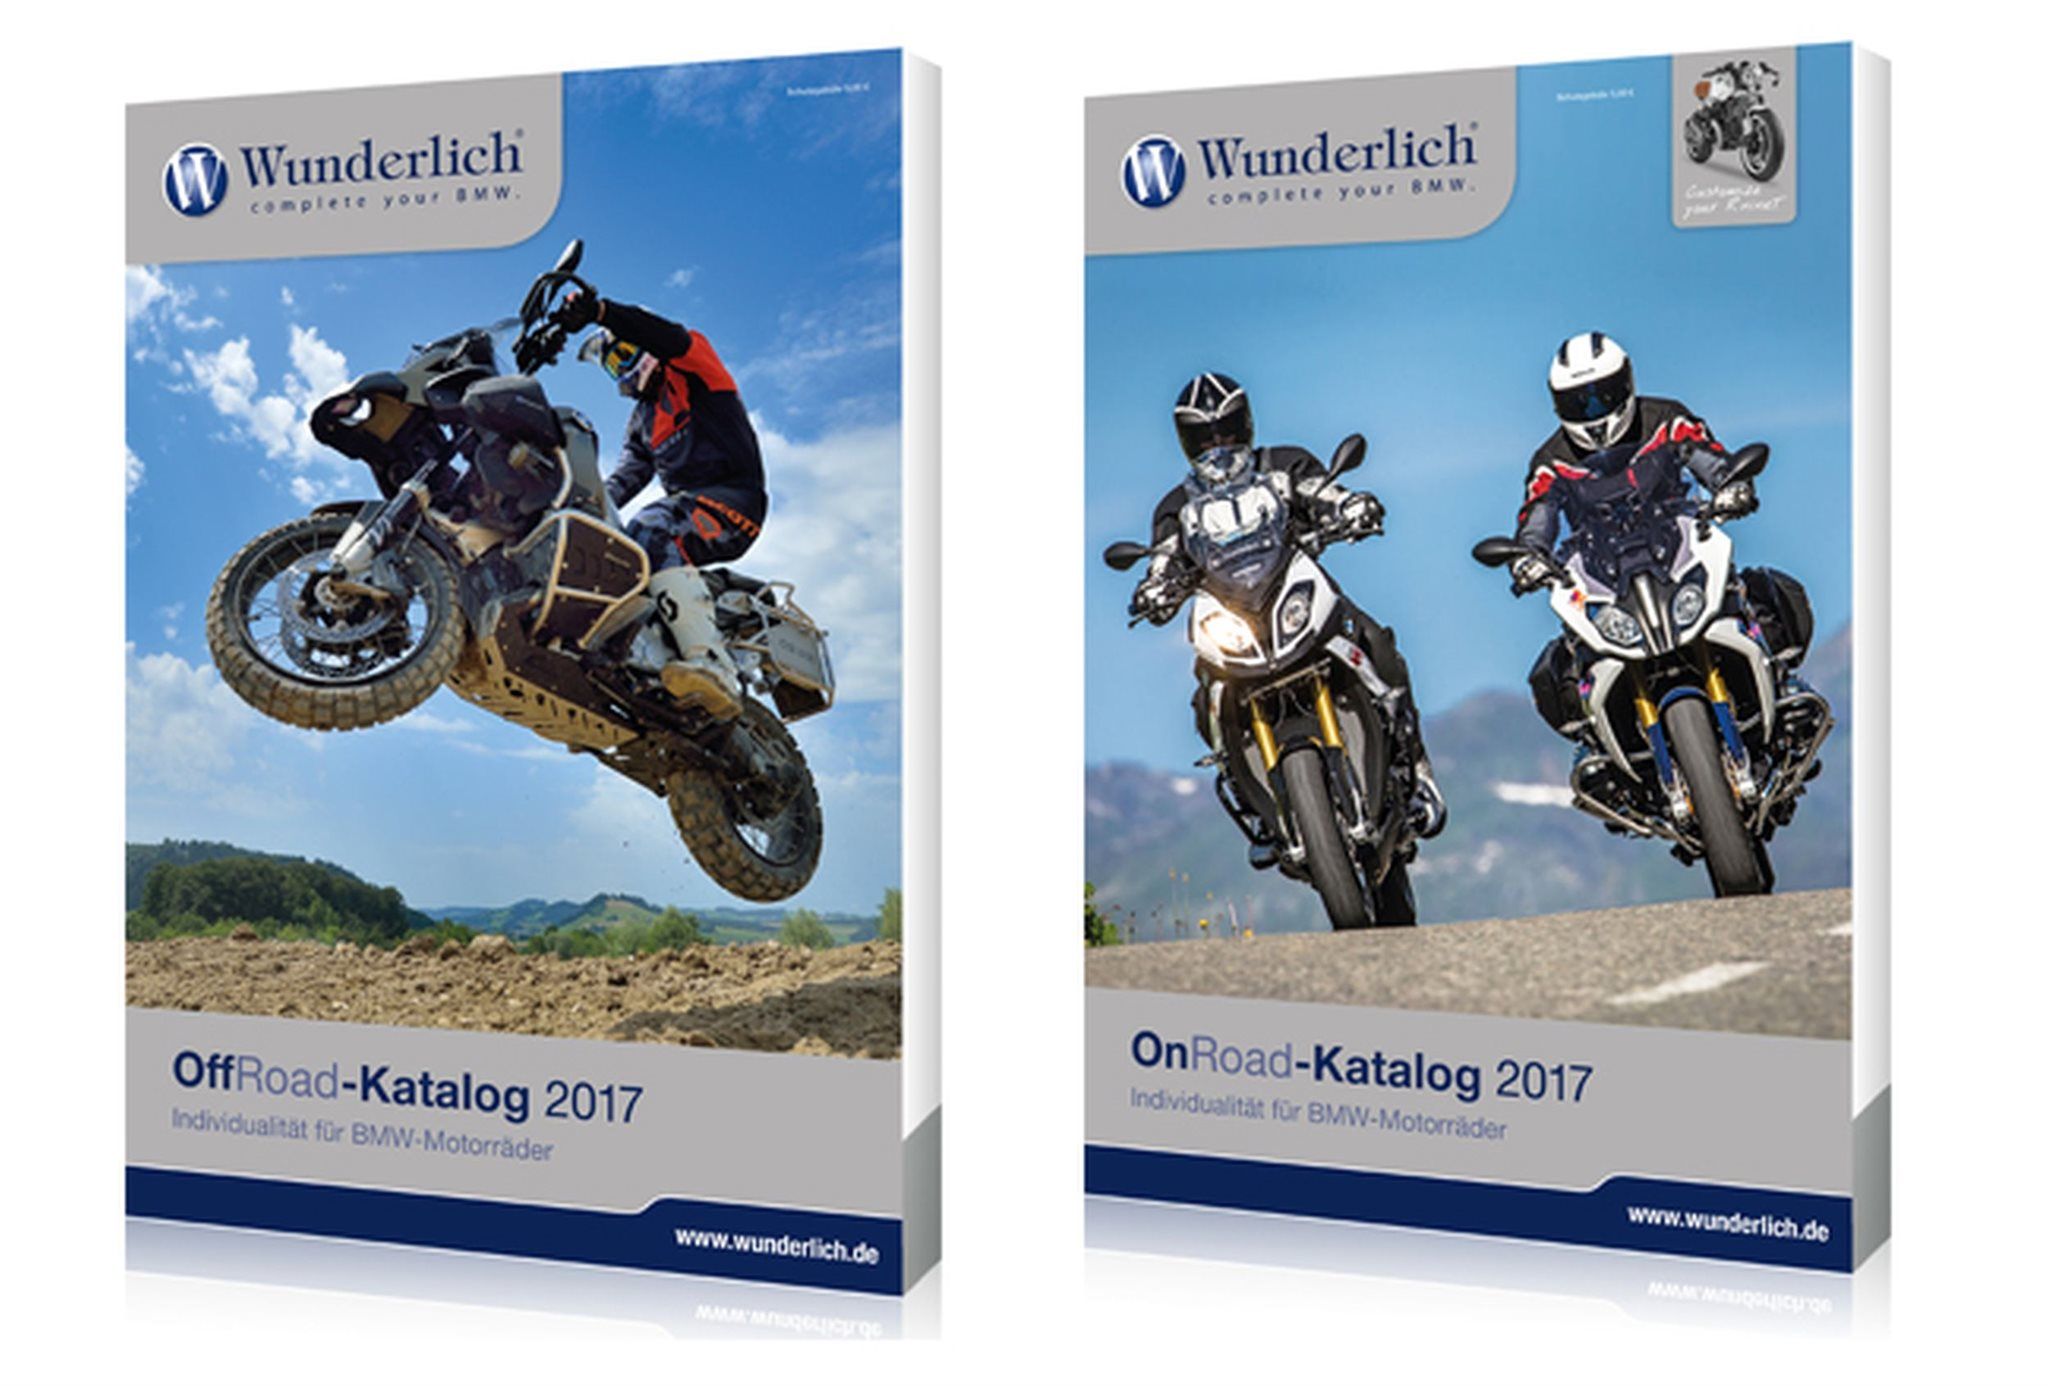 wunderlich katalog mit 1400 seiten bmw zubeh r motorrad news. Black Bedroom Furniture Sets. Home Design Ideas